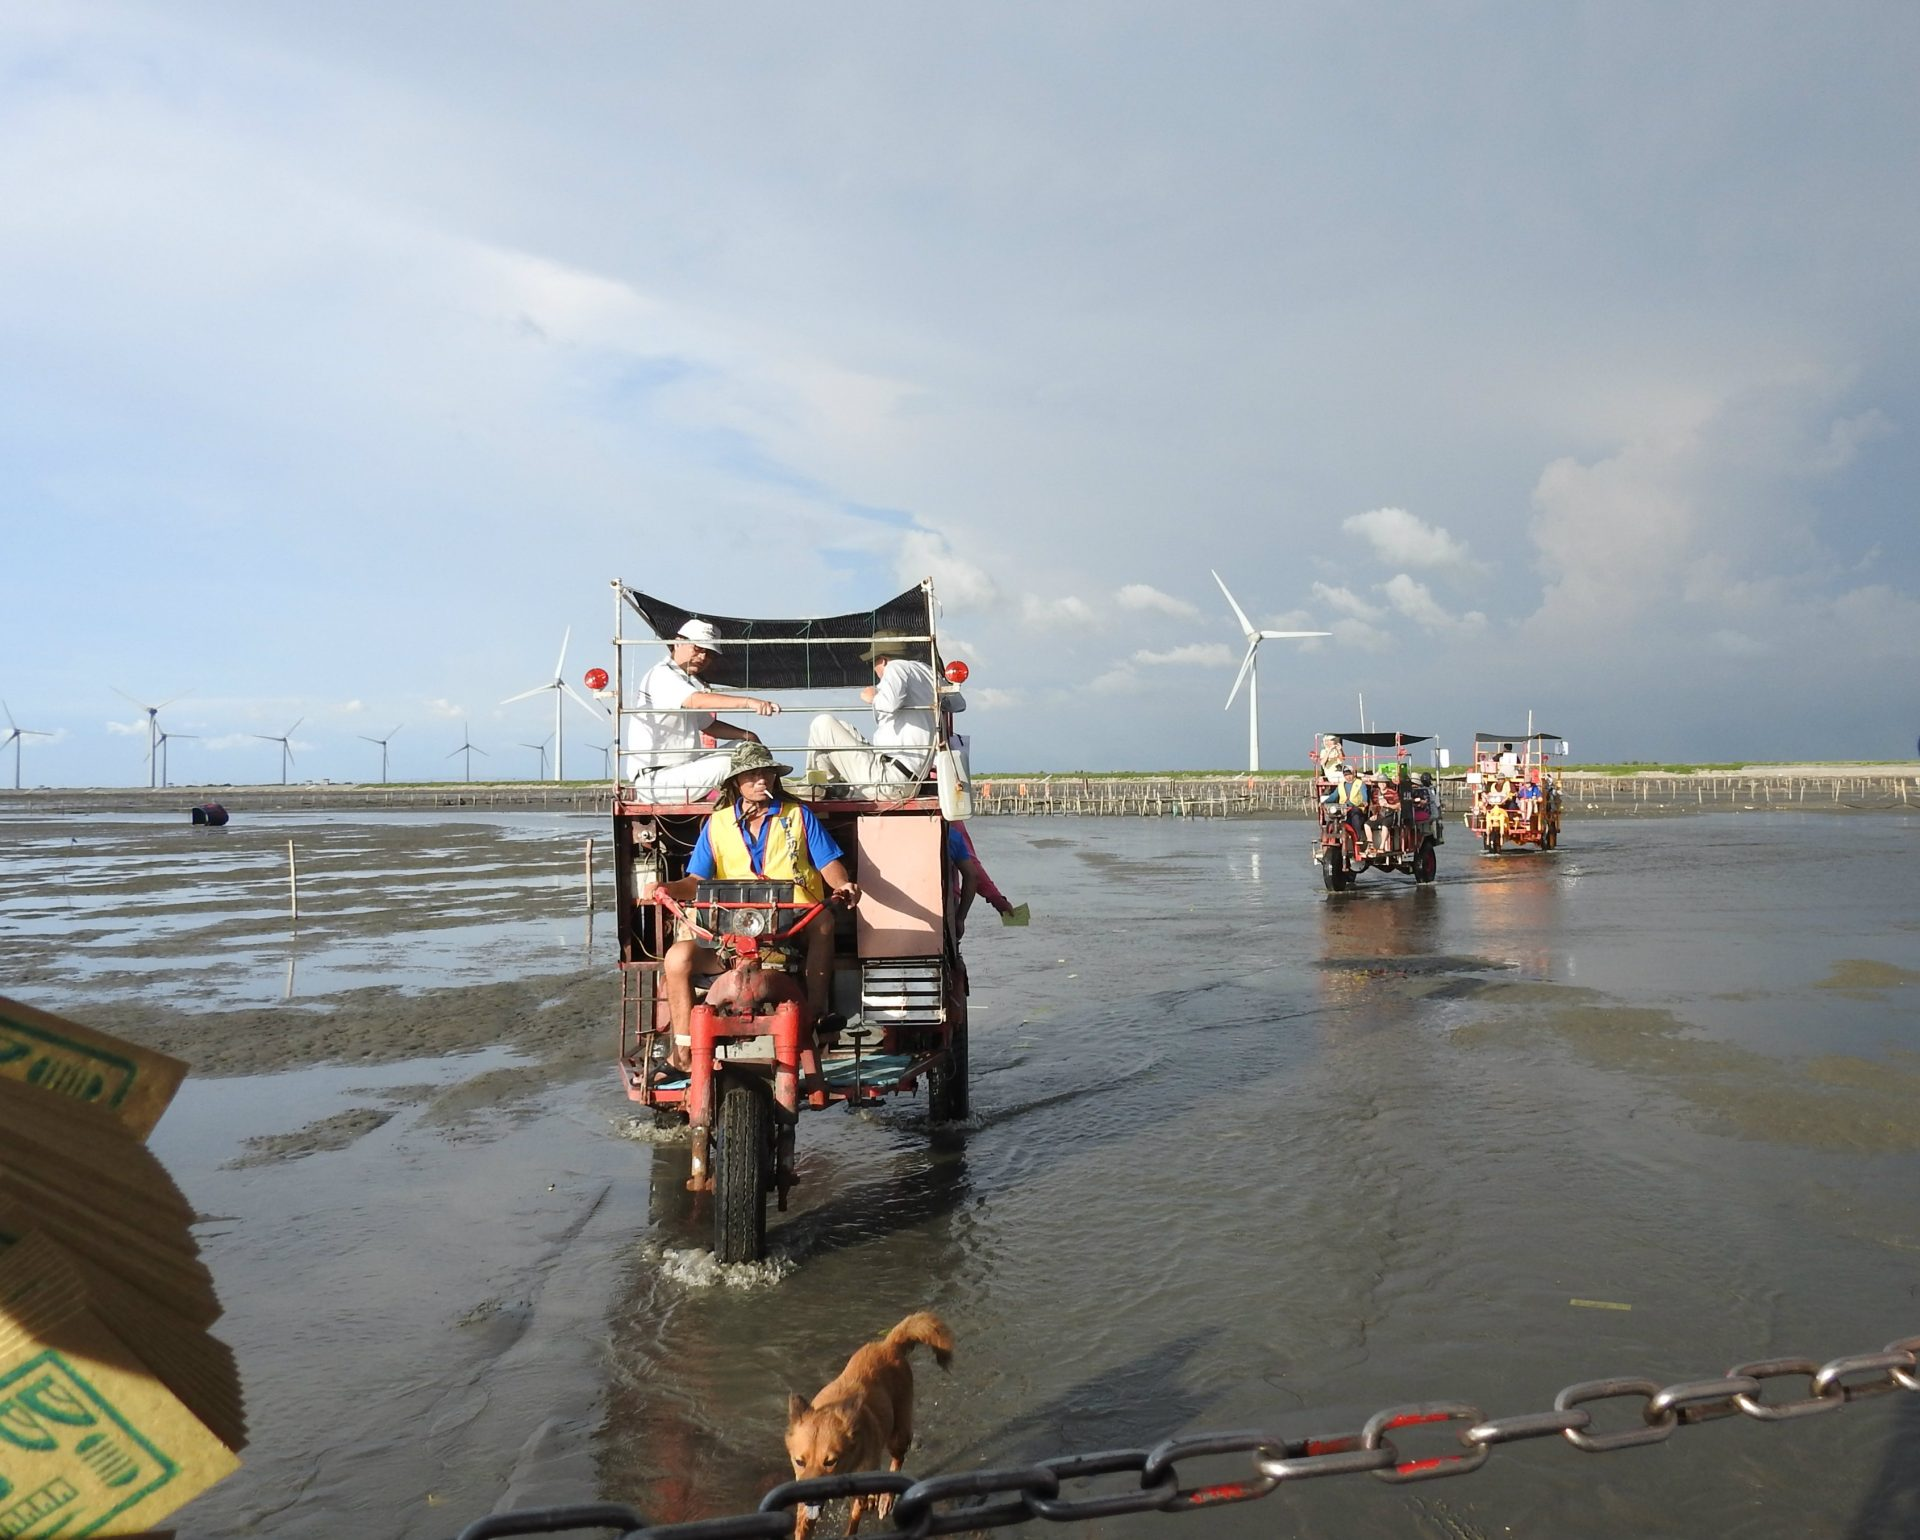 A unique three-wheel oyster truck transporting visitors to the intertidal zone in Wanggong (Image: Billy Shyu/ Vision Times)